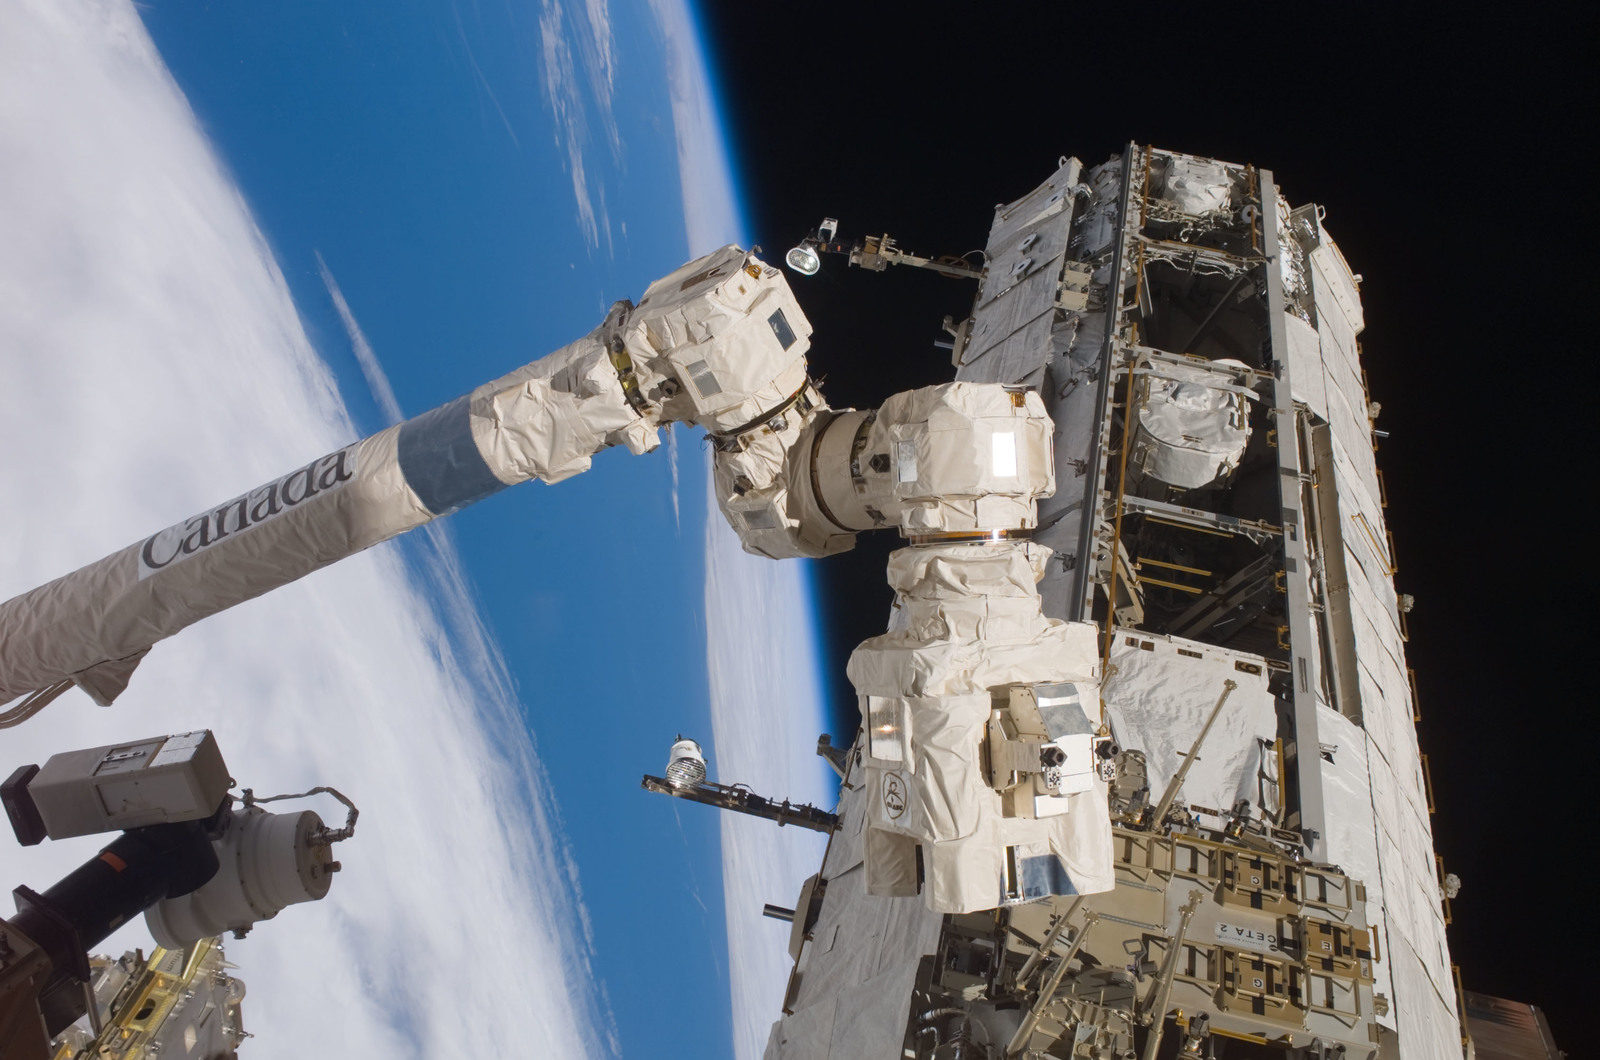 S121E07339 - STS-121 - The SSRMS positions to grapple with the MBS during STS-121 / Expedition 13 joint operations